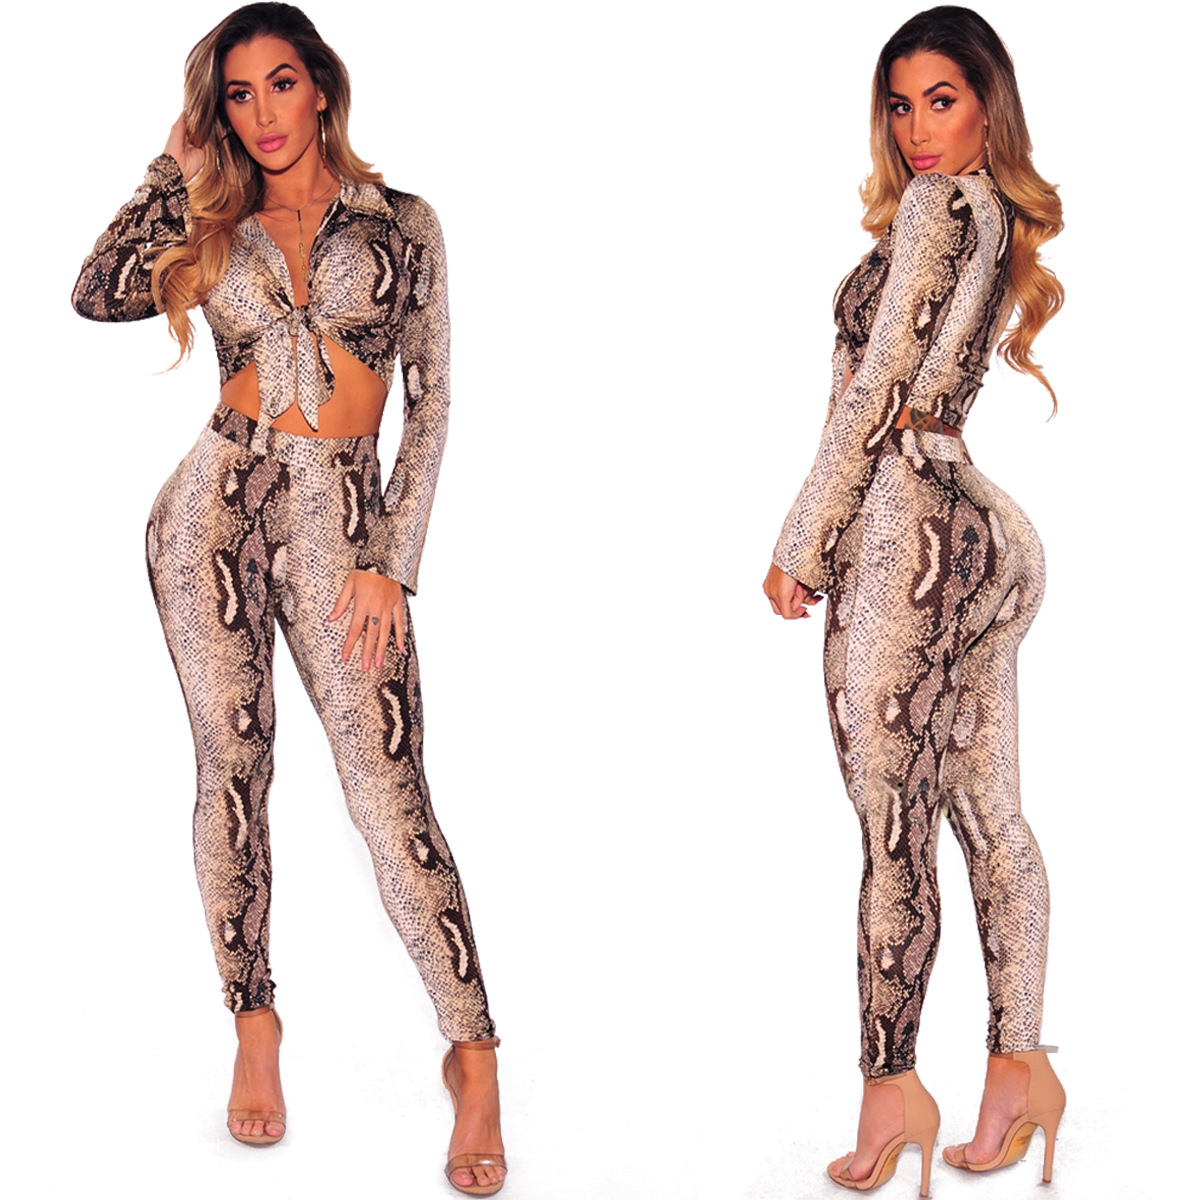 AliExpress EBay Hot Selling Sexy Python Fold-down Collar Lace-up Long-sleeved Upper Garment Slim Fit WOMEN'S Suit Currently Avai